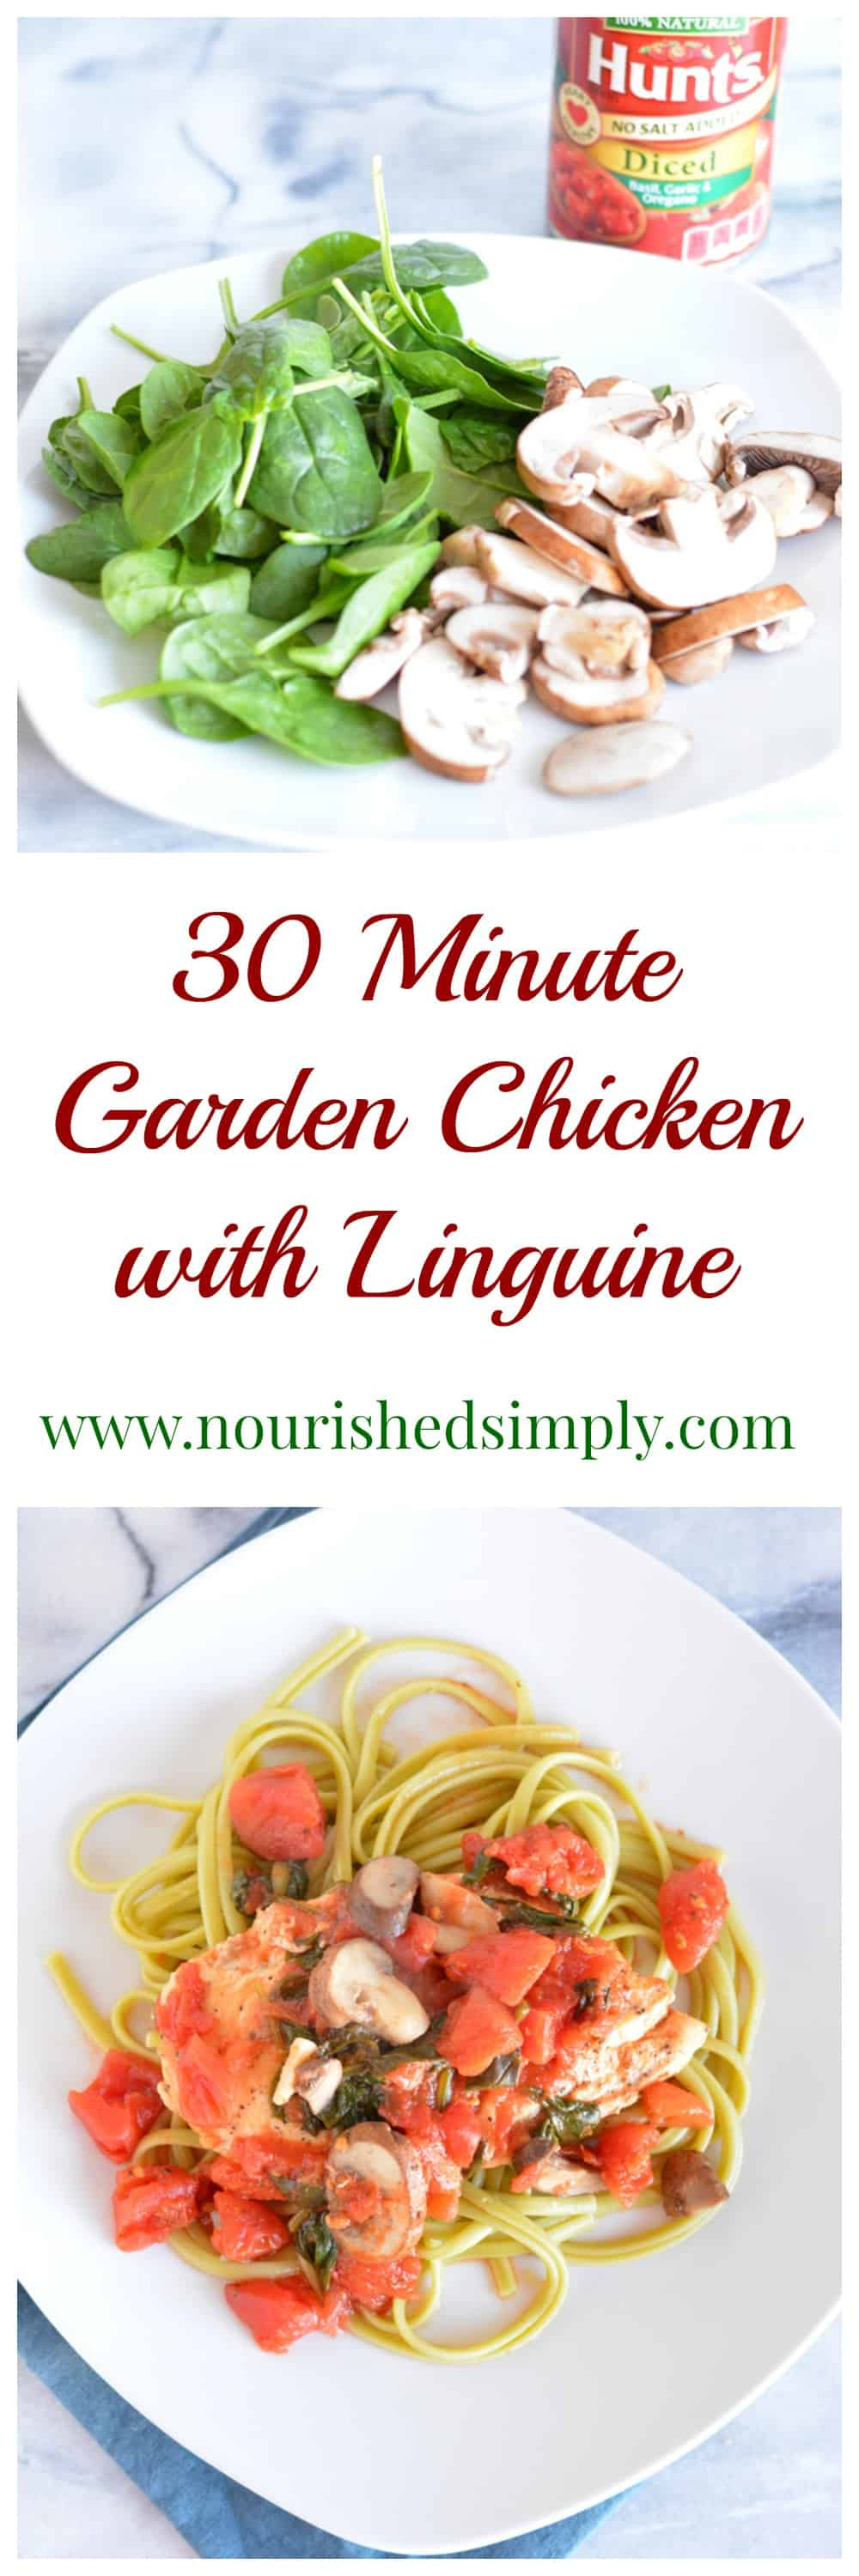 30 Minute Garden Chicken with Linguine made with only 7 ingredients